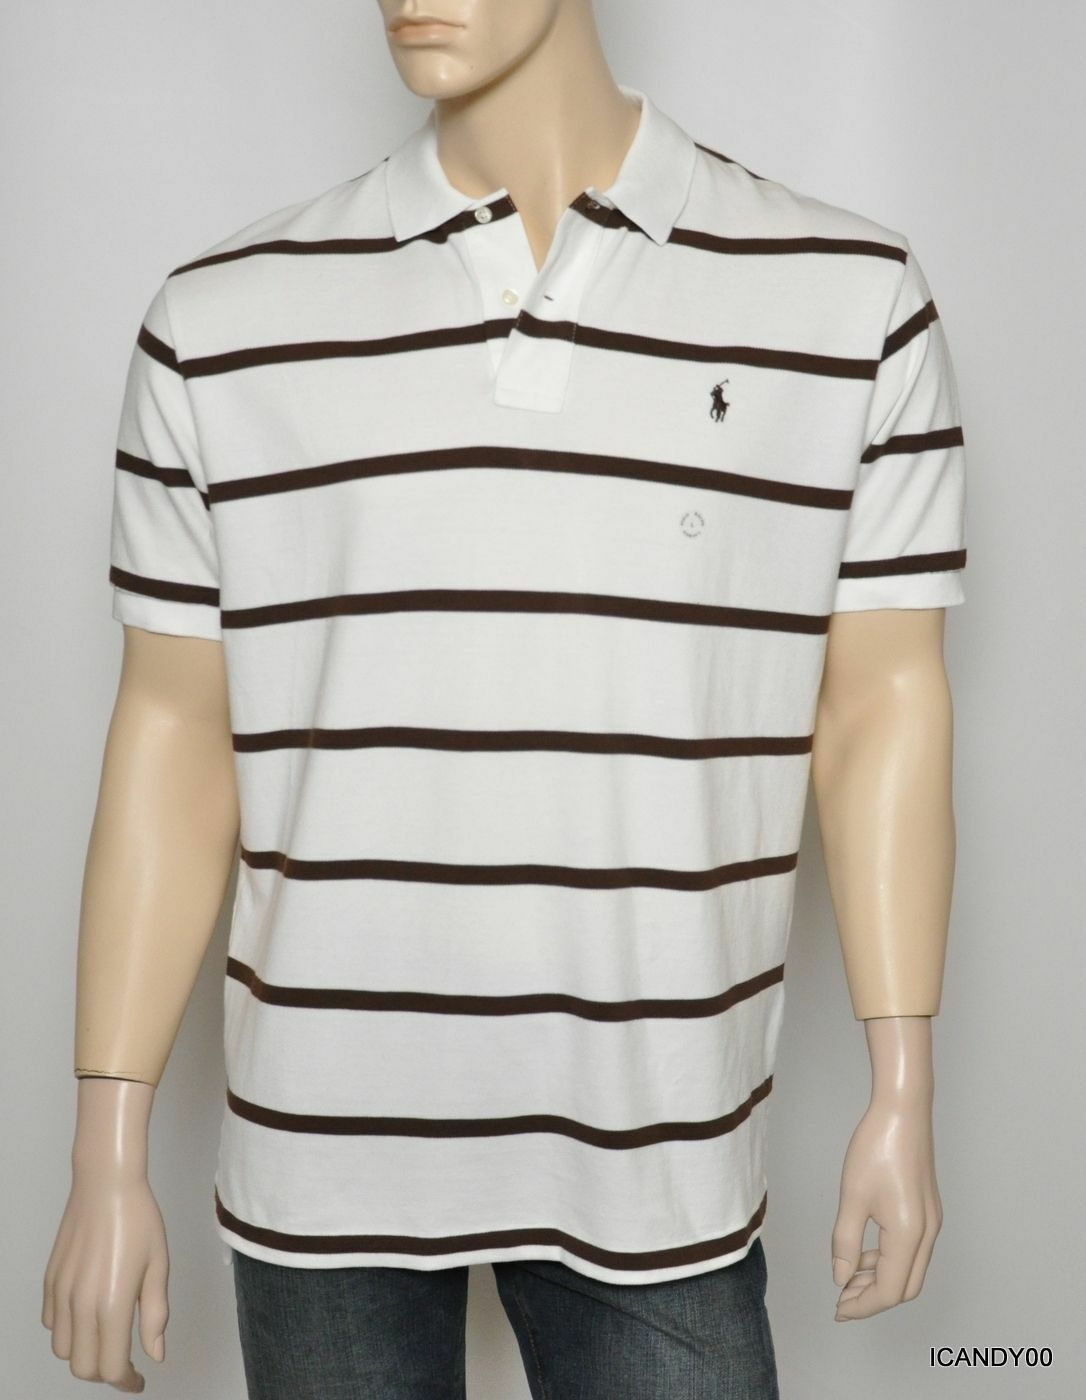 70471fff5da4 Nwt Ralph Lauren Polo Shirt Cotton Short Sleeves T-Shirt Top White Stripe L